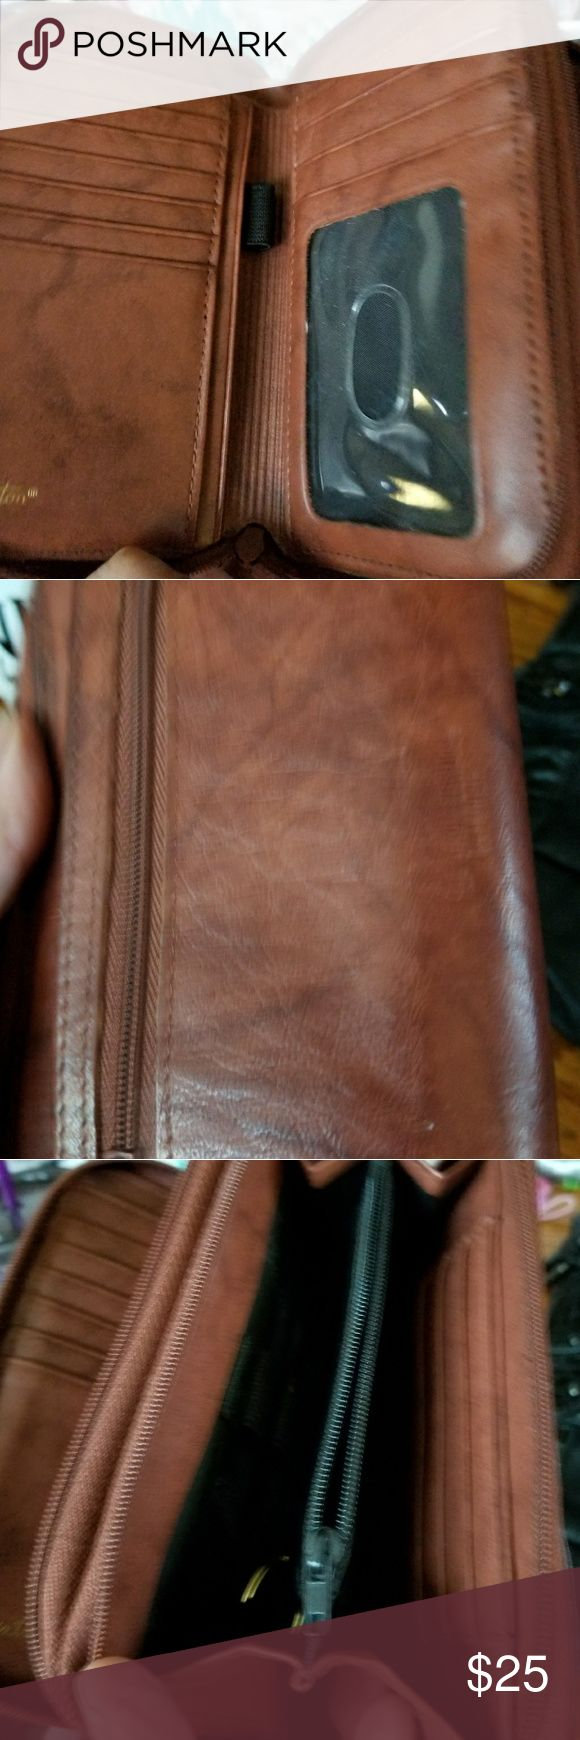 Buxton wallet A lot of organizational pockets. Has a pen holder as well as a mirror Buxton Bags Wallets